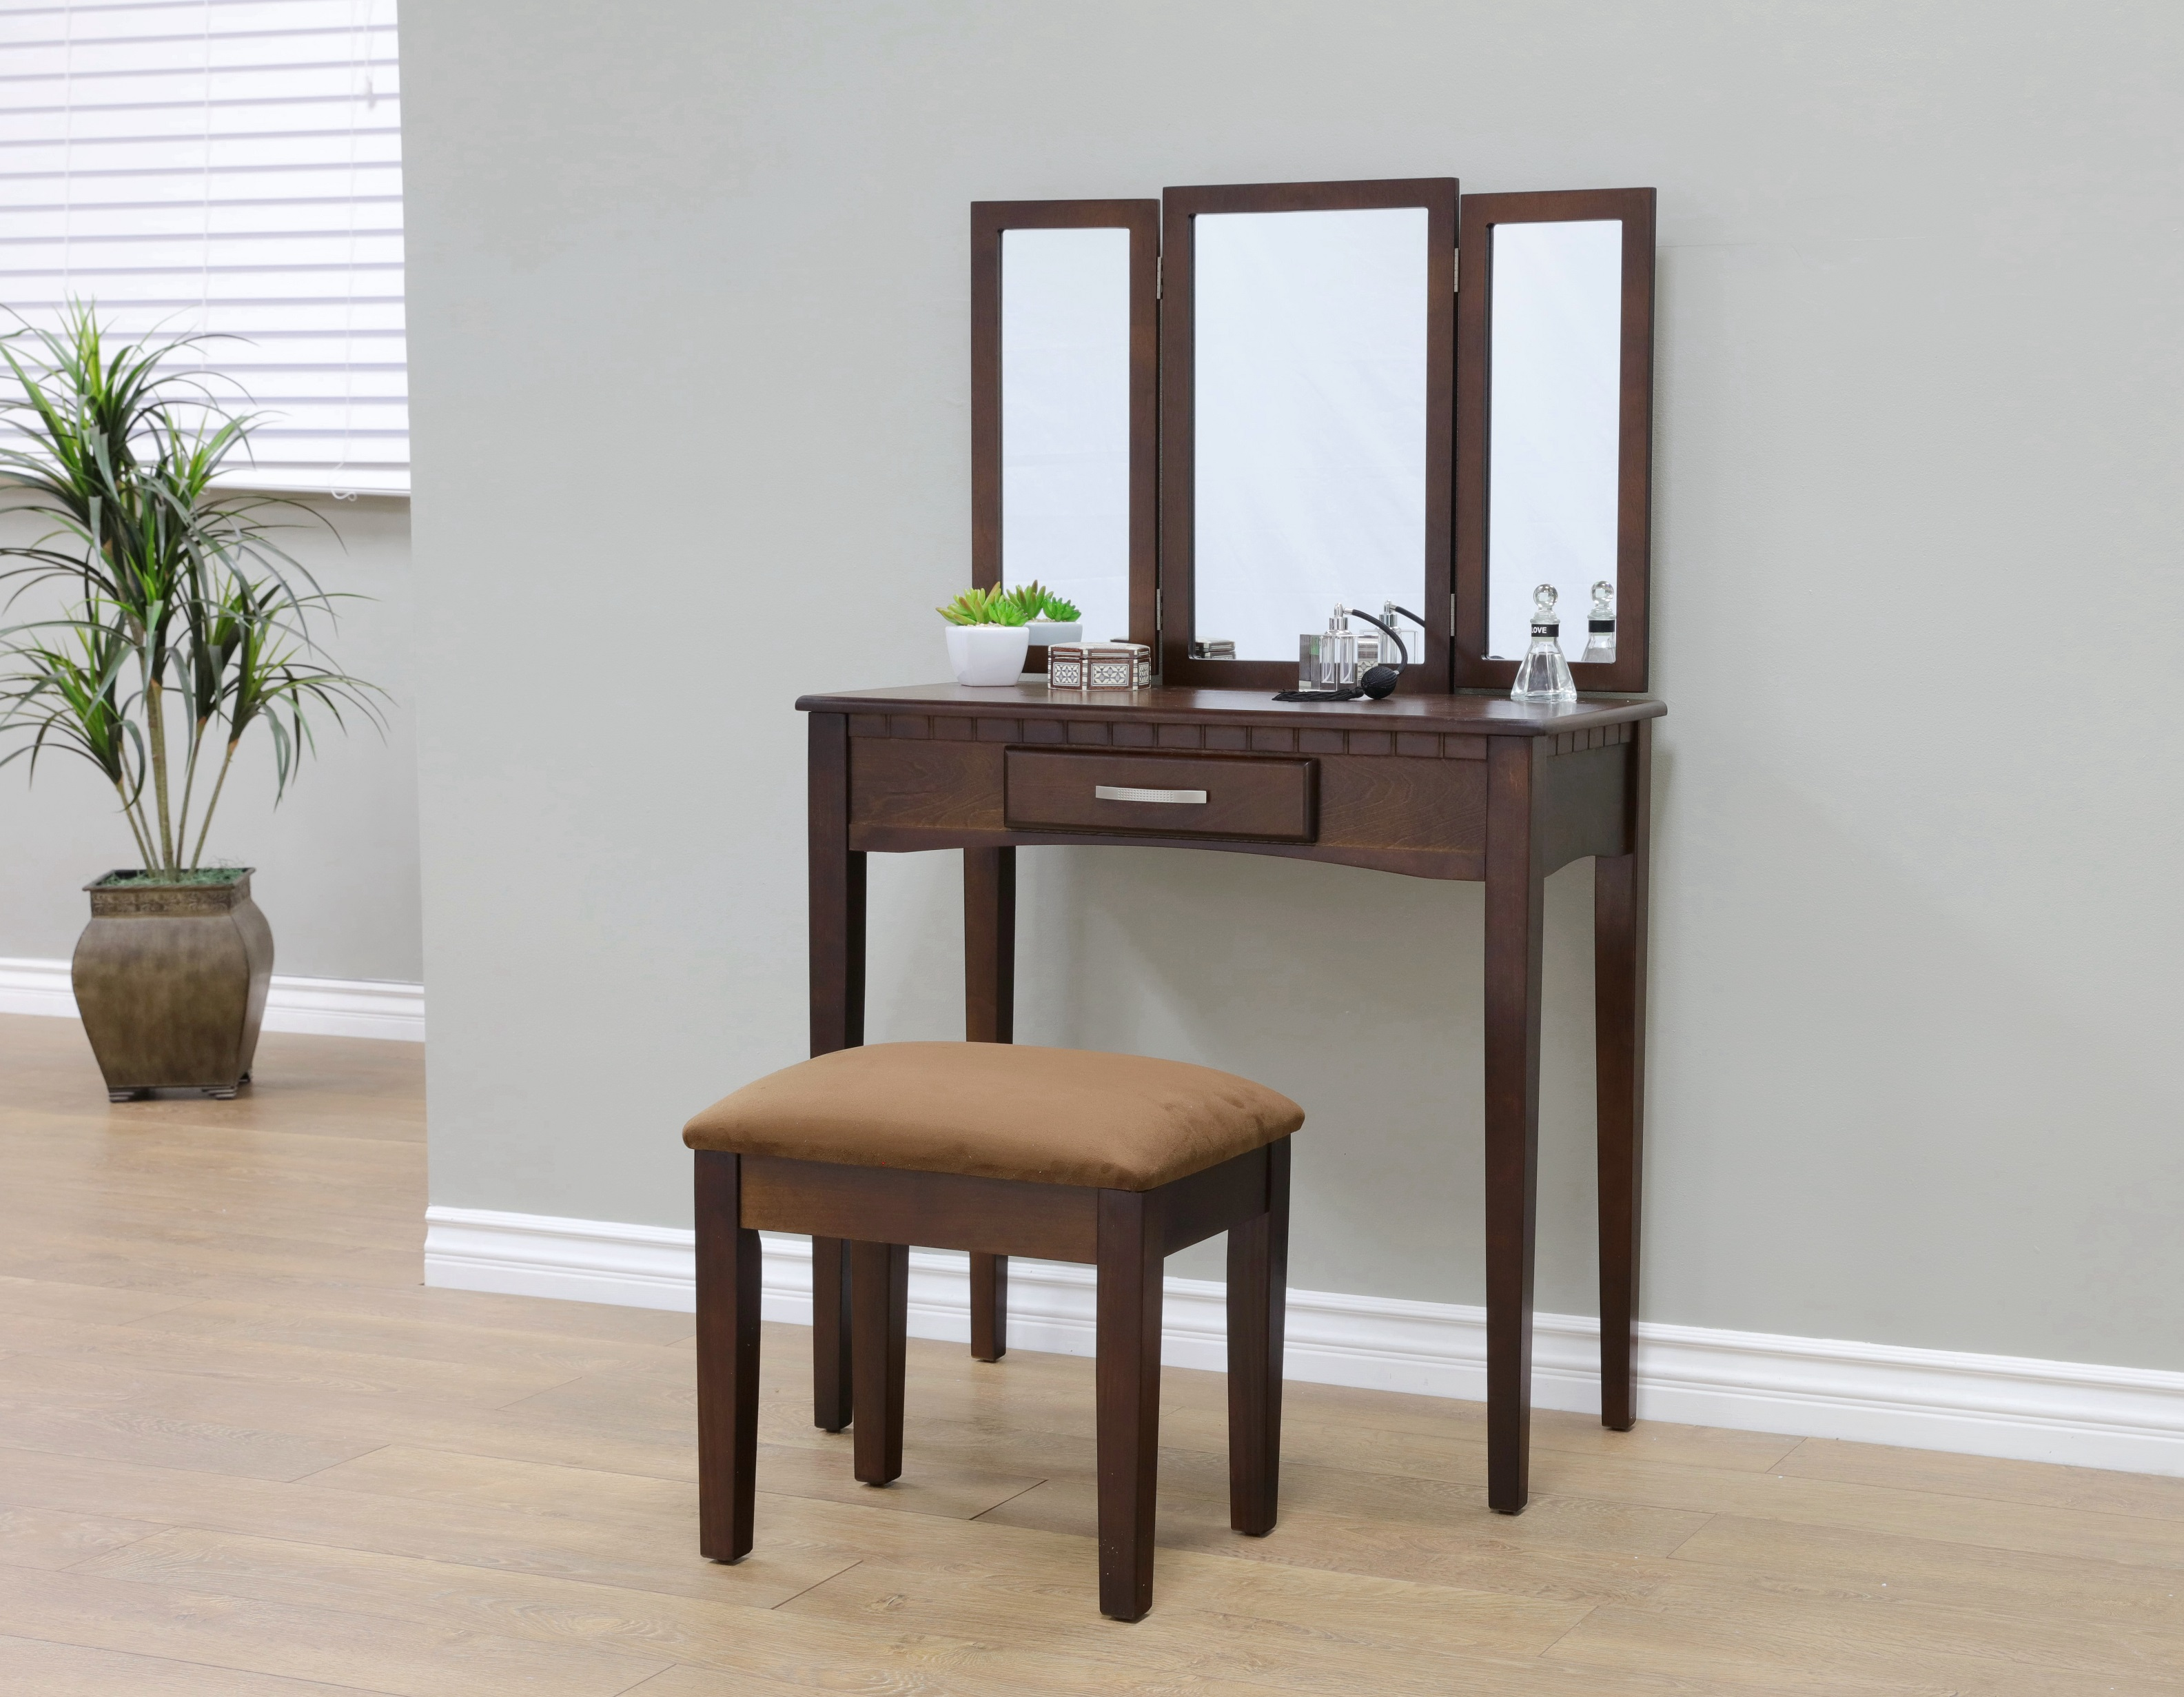 Home Craft 3 Piece Bedroom Vanity, Multiple Colors   Walmart.com